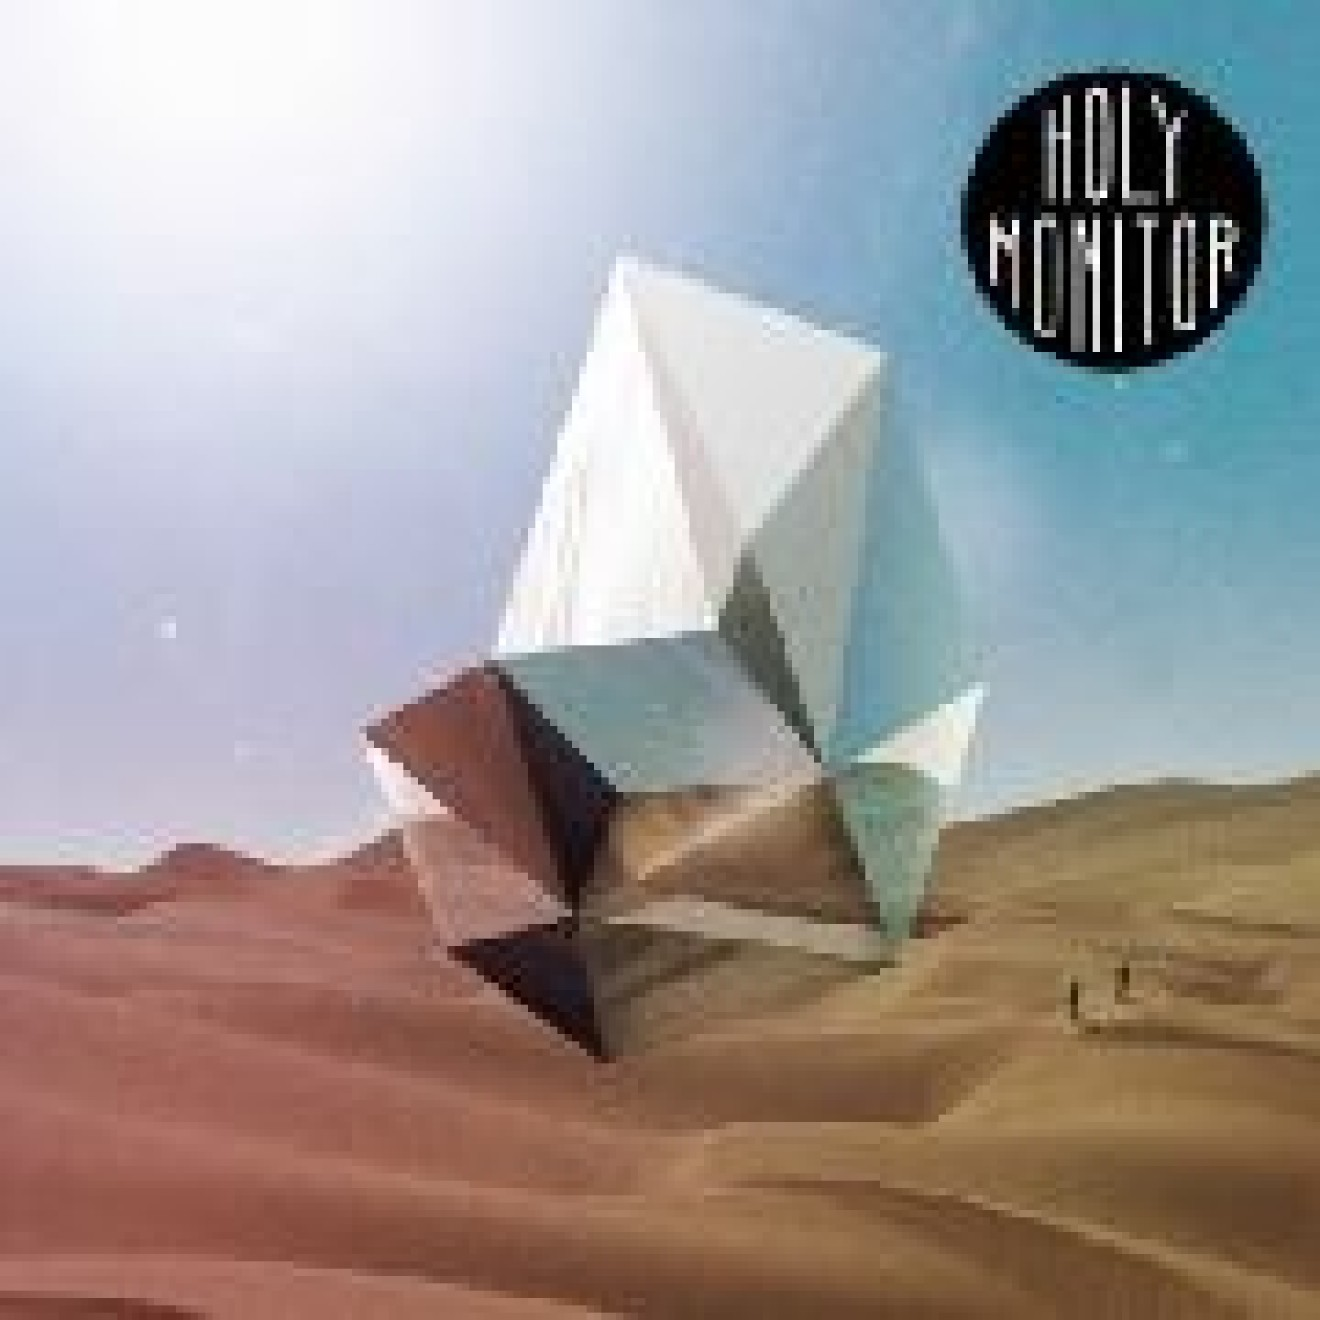 HOLY MONITOR - s/t LP marmoriert